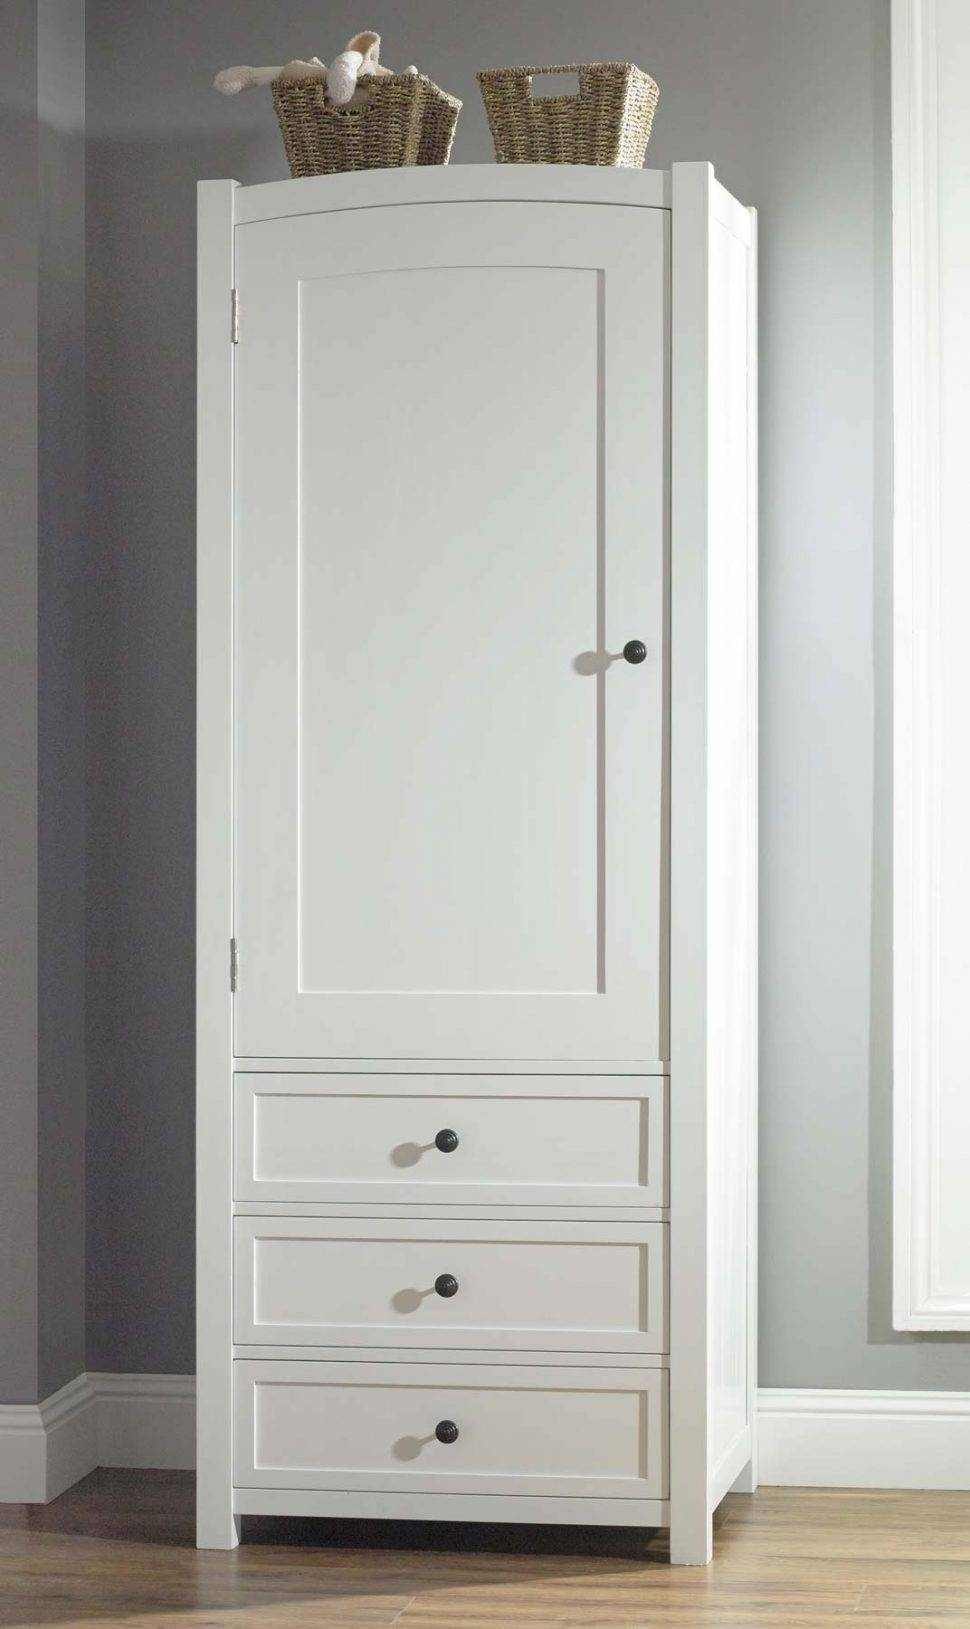 Wardrobe : 39 Formidable White Wooden Wardrobe With Drawers Photo throughout White Wardrobes With Drawers (Image 13 of 15)